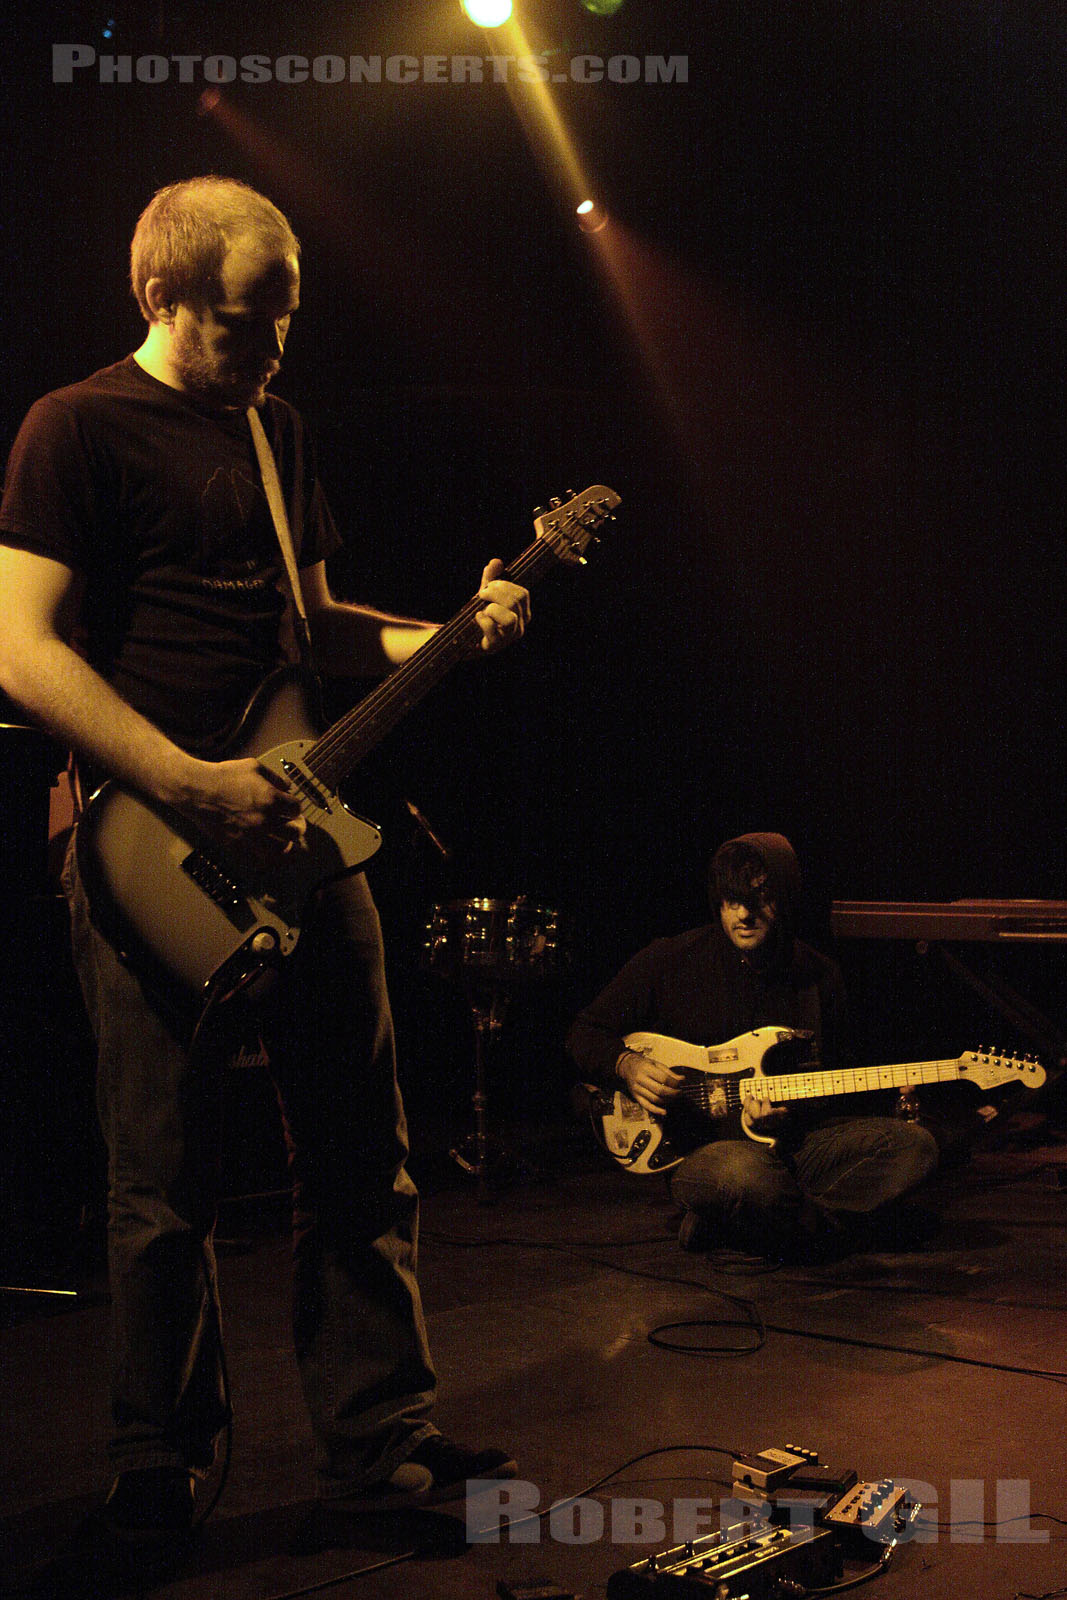 EXPLOSIONS IN THE SKY - 2007-02-27 - PARIS - Trabendo